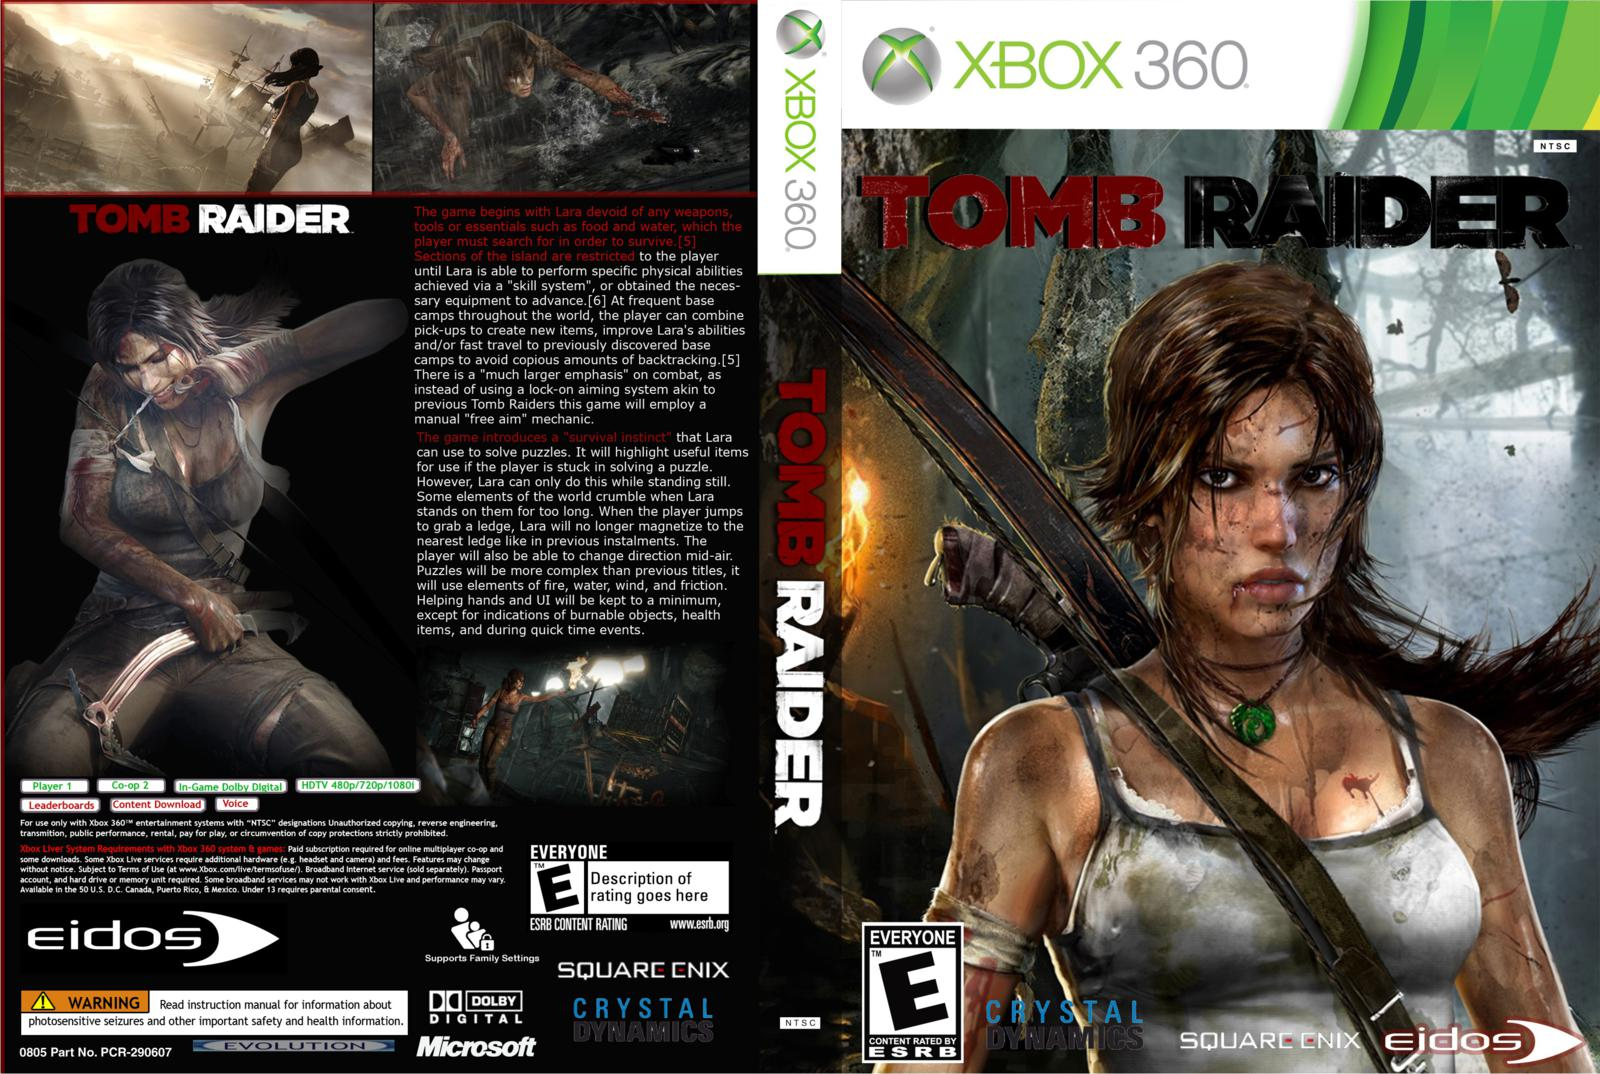 Download - Tomb Raider (2013) - XBOX 360 - ISO